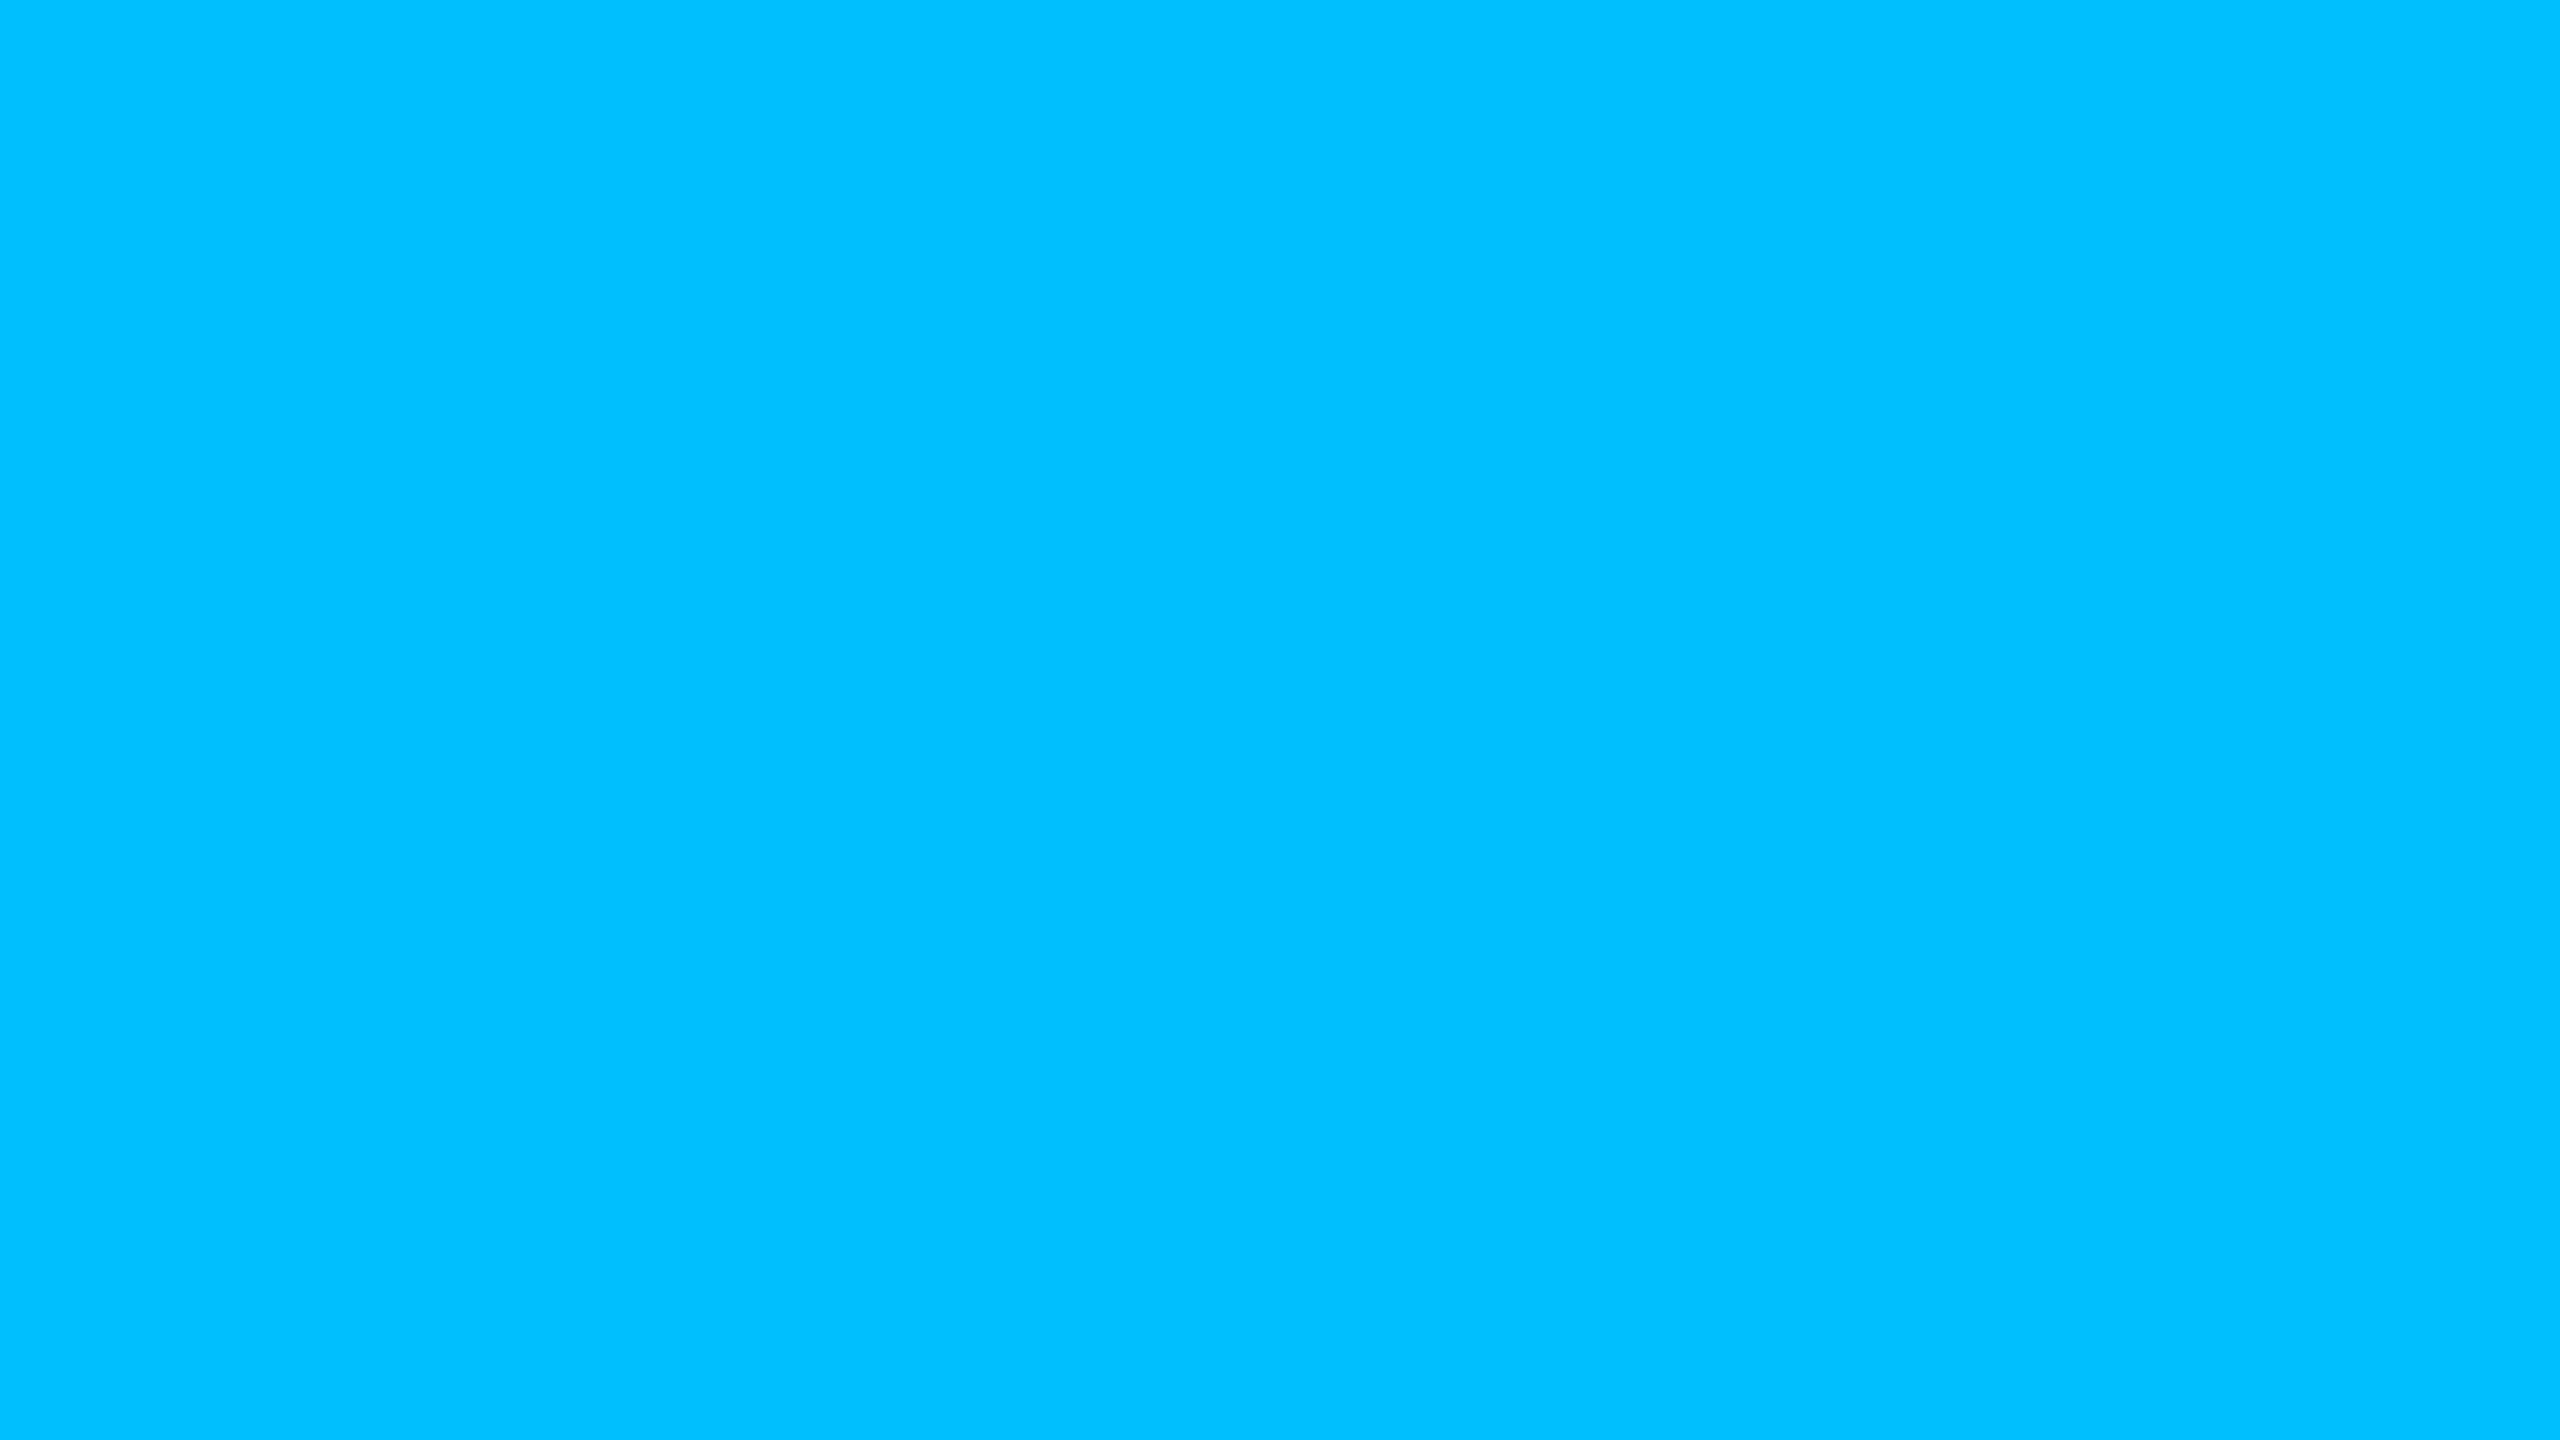 2560x1440 deep sky blue solid color background